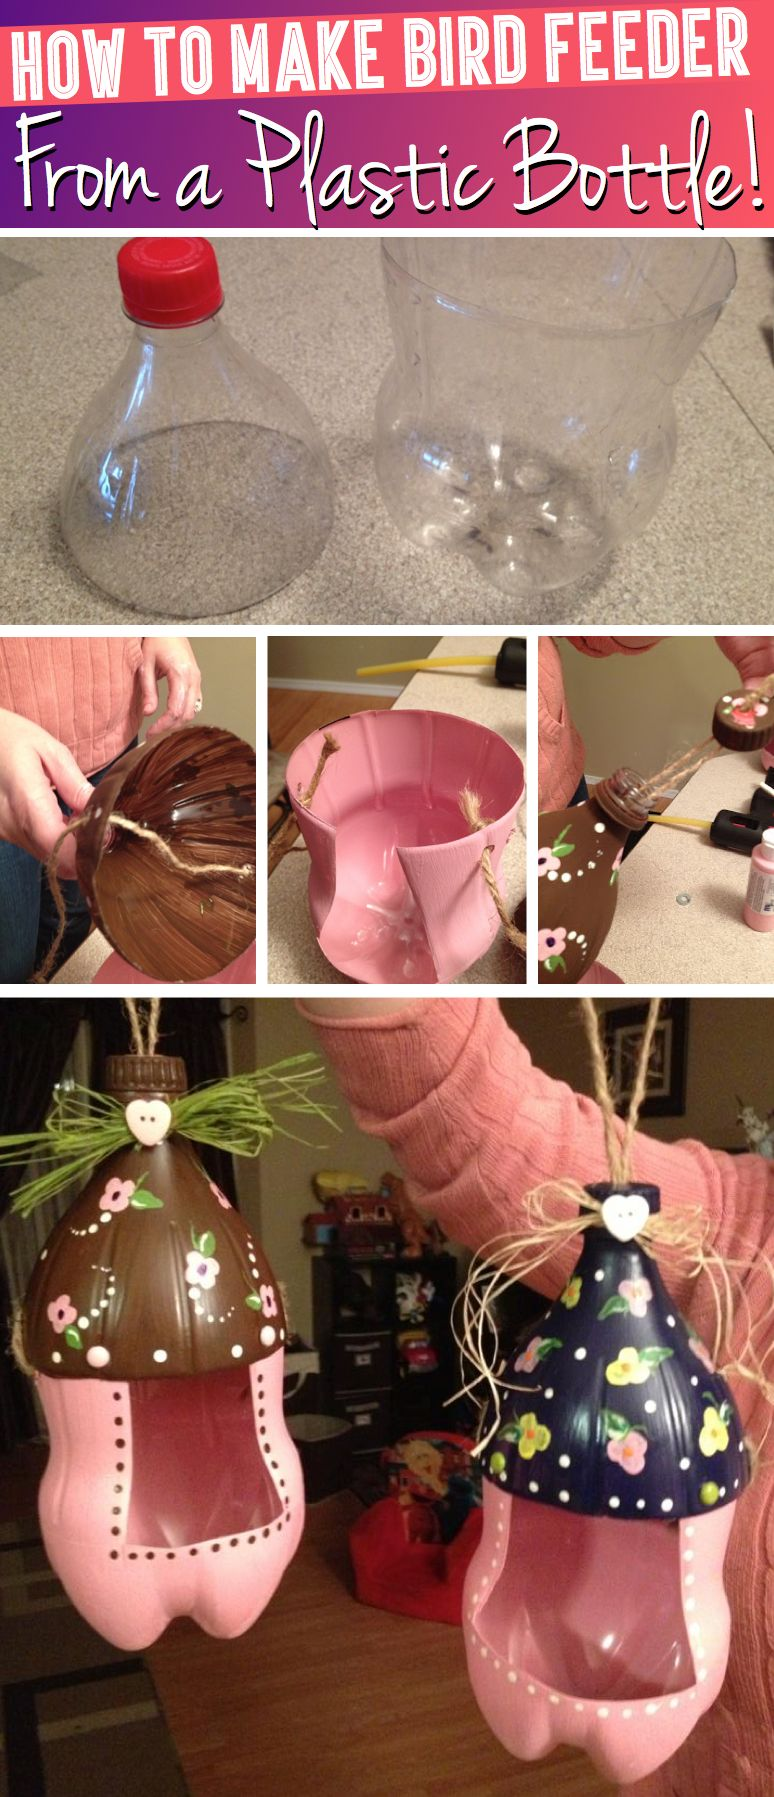 How to Make a Cute Bird Feeder From a Plastic Bottle #plasticbottleart